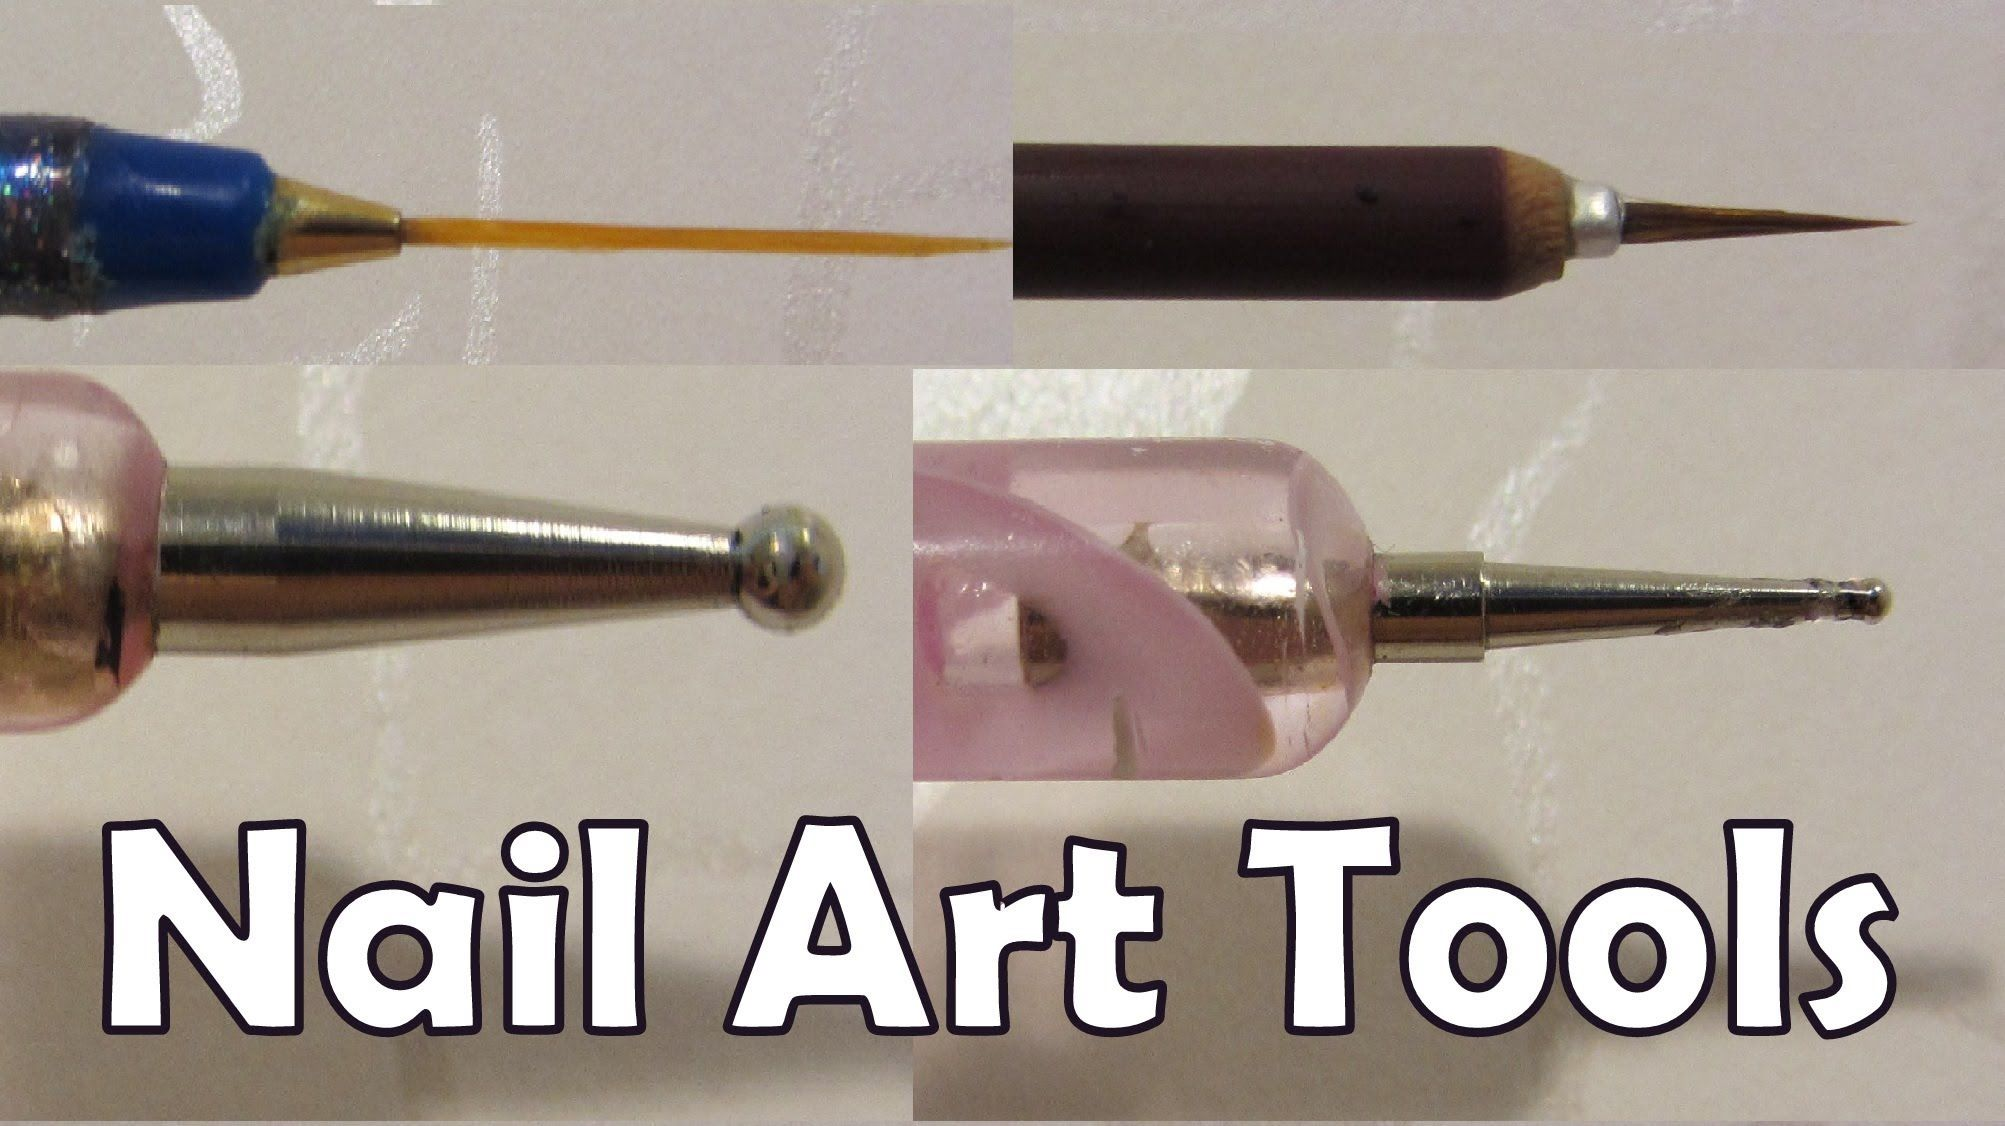 How To Make Your Own Nail Art Tools At Home Use Sharp Pencil For Small Dotting Tool Blunt Large Or The Head Of A Pin